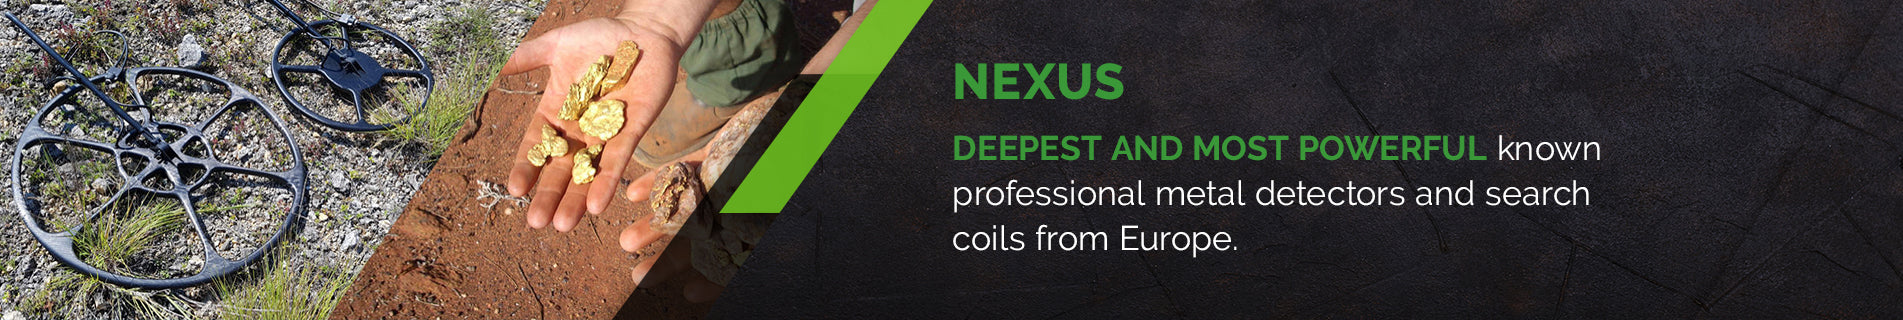 Nexus Metal Detectors | Free US Shipping | Secure Payment